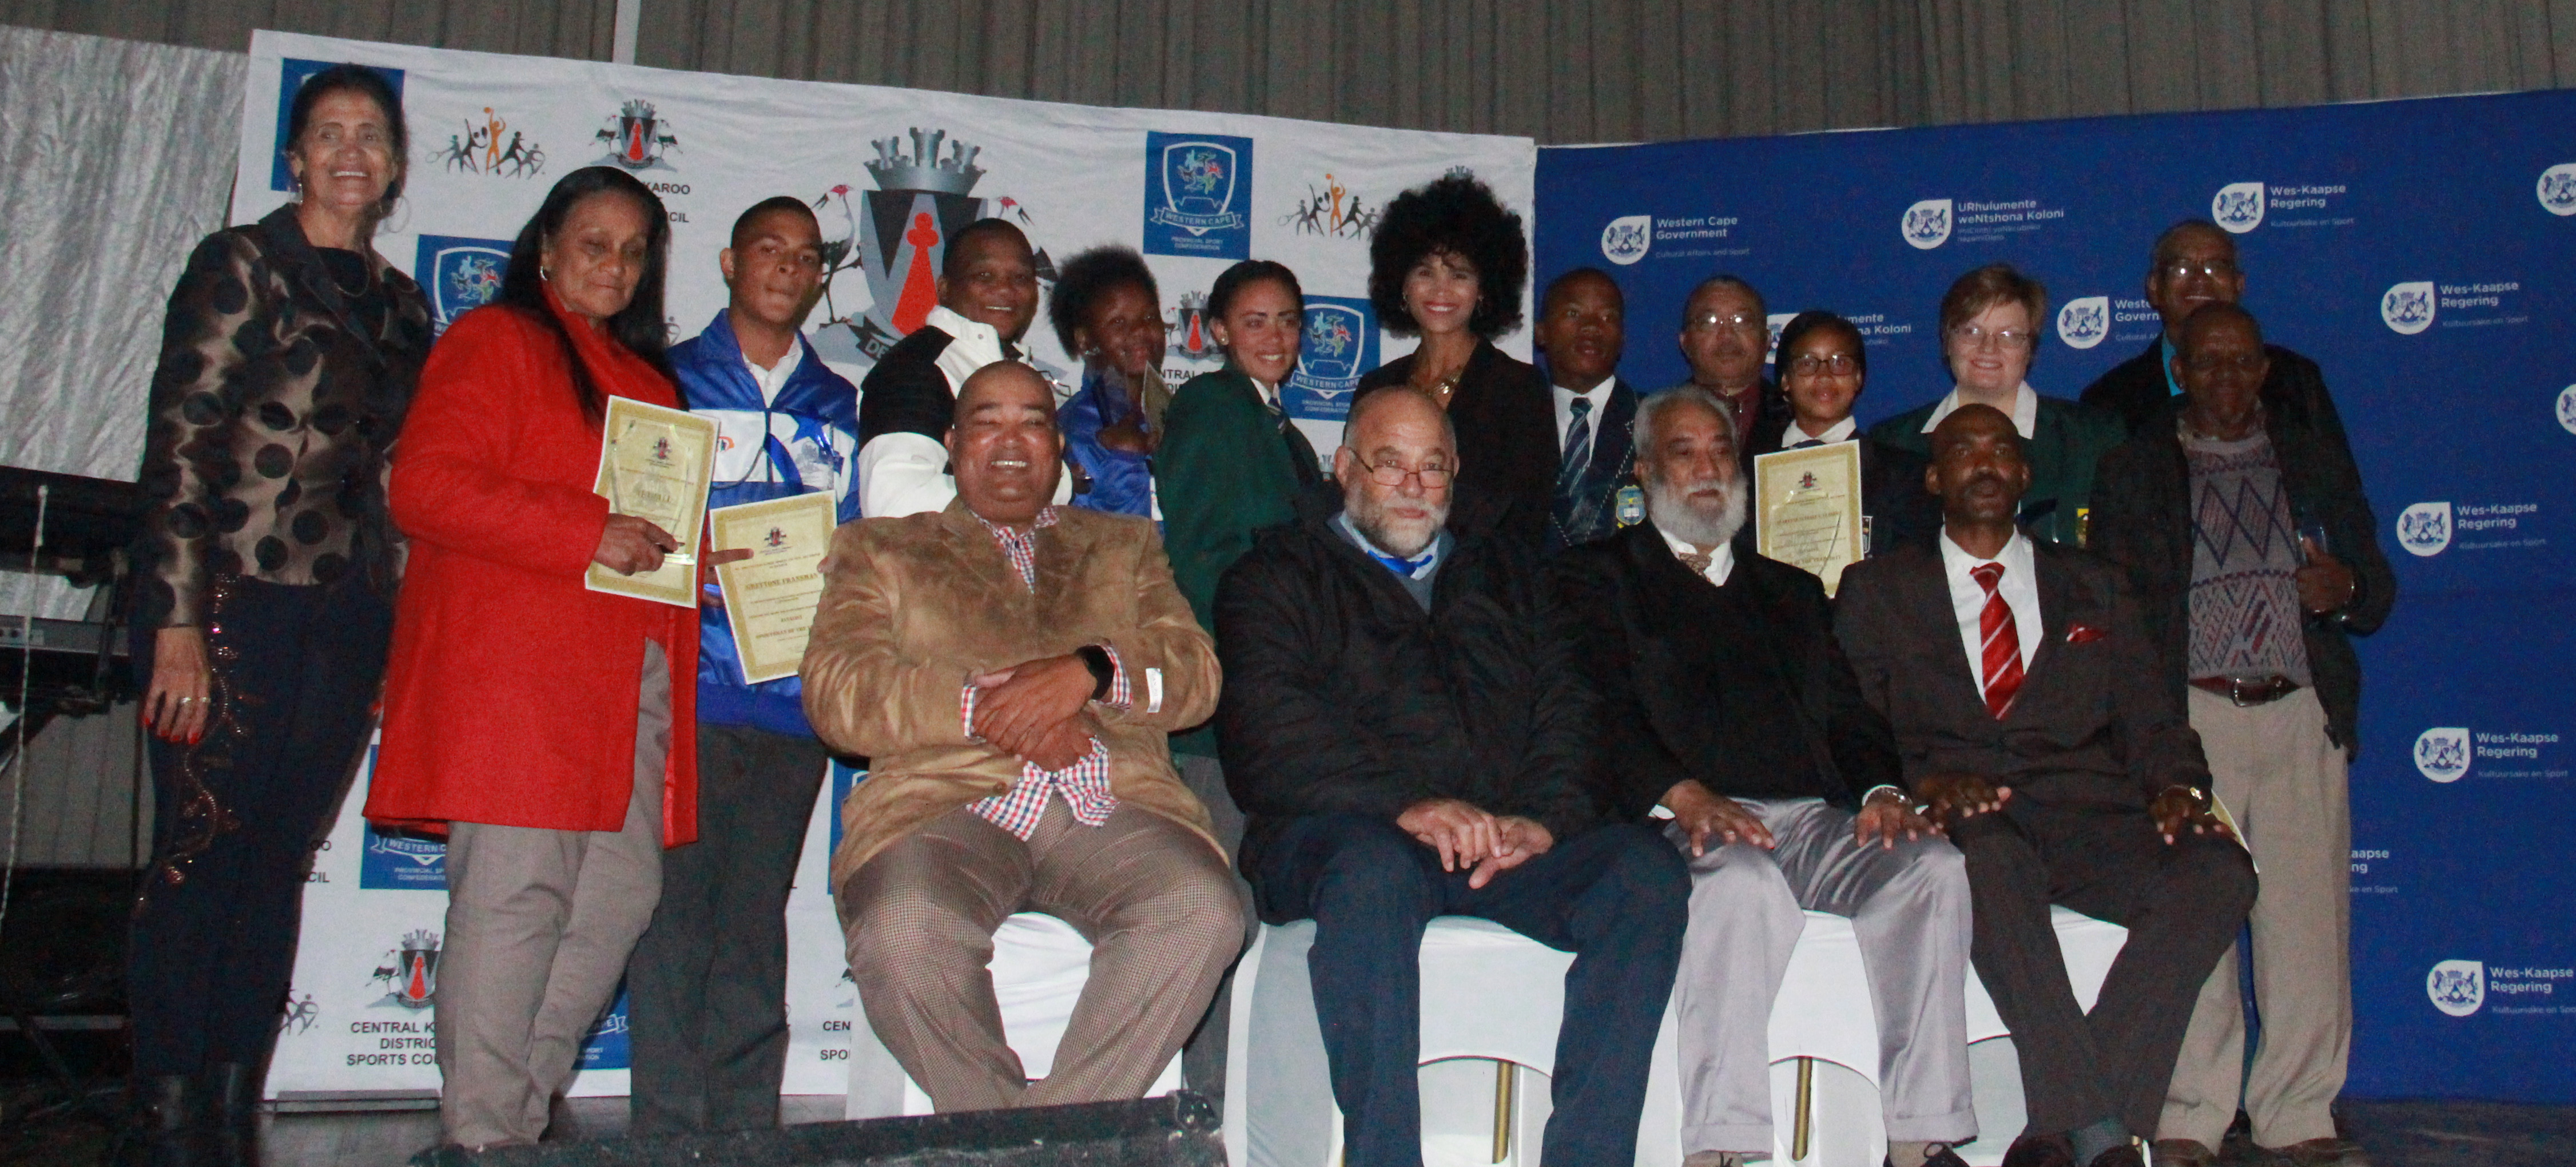 The winners from the evening with David Maans form the Central Karoo Sport Council, Mayor Japie van der Linde and Henry Paulse from DCAS